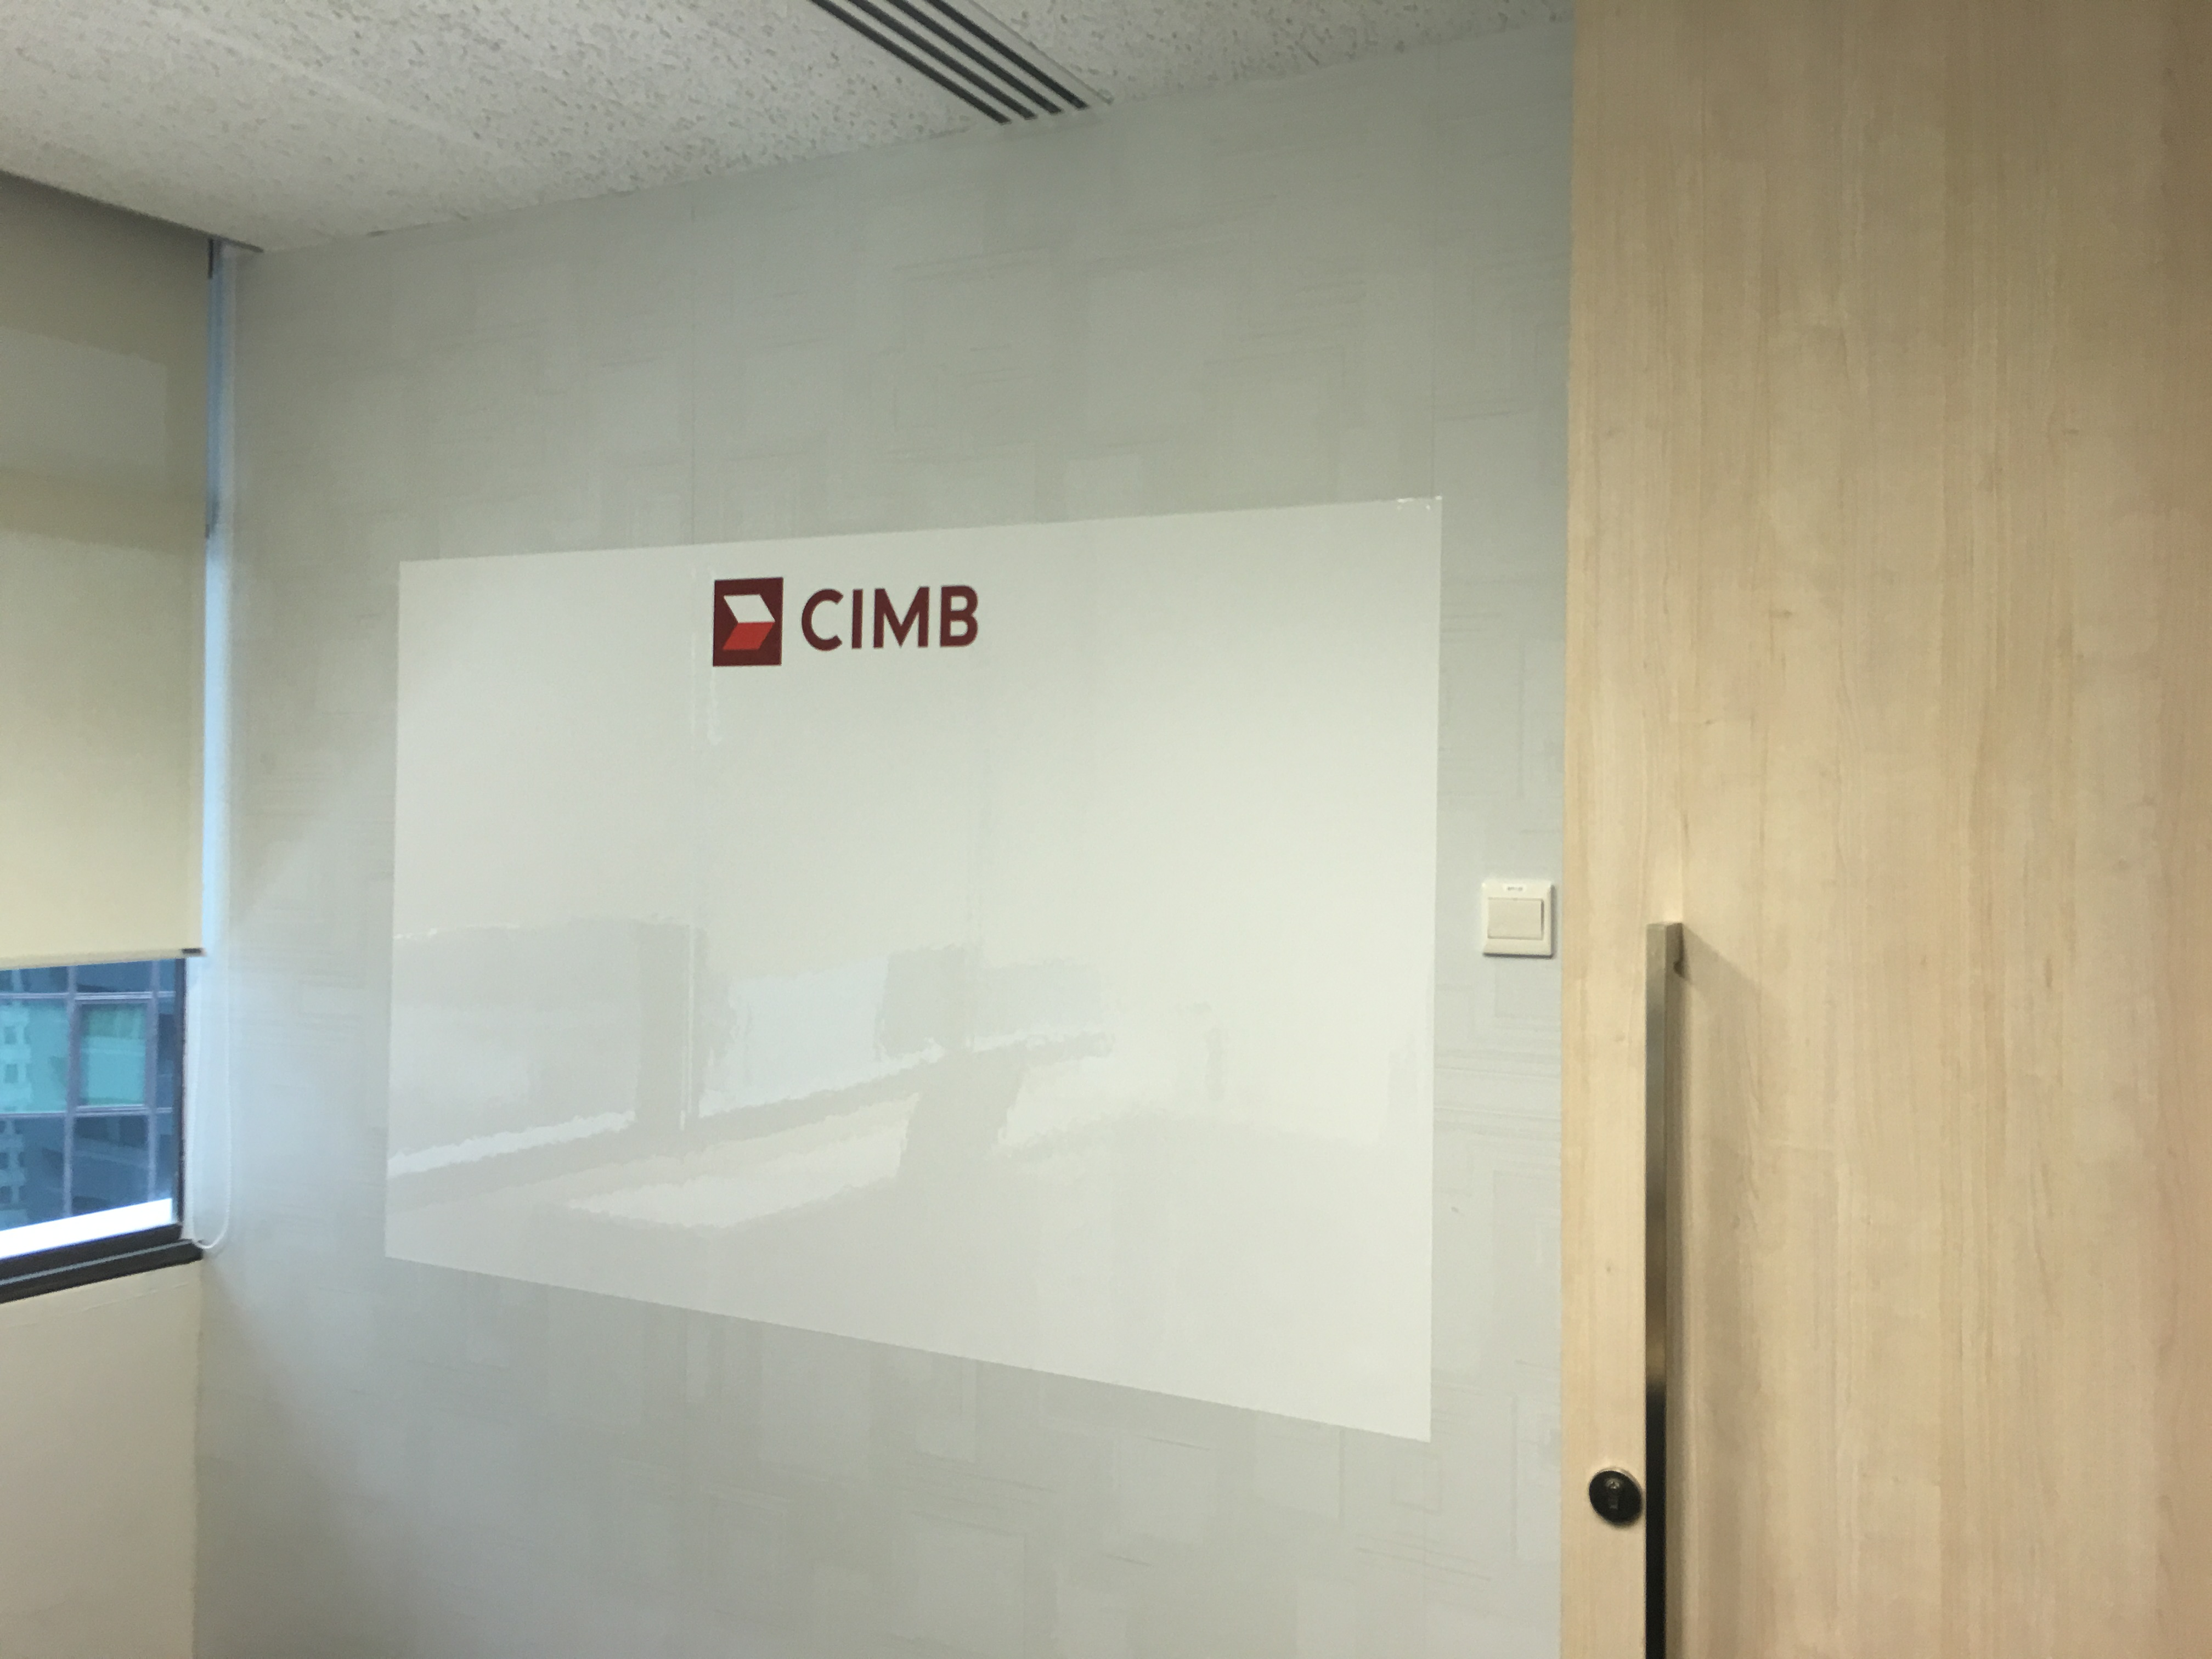 whiteboard for office wall. Whiteboard For Office Wall. Fine Vm Cimb And Wall  E